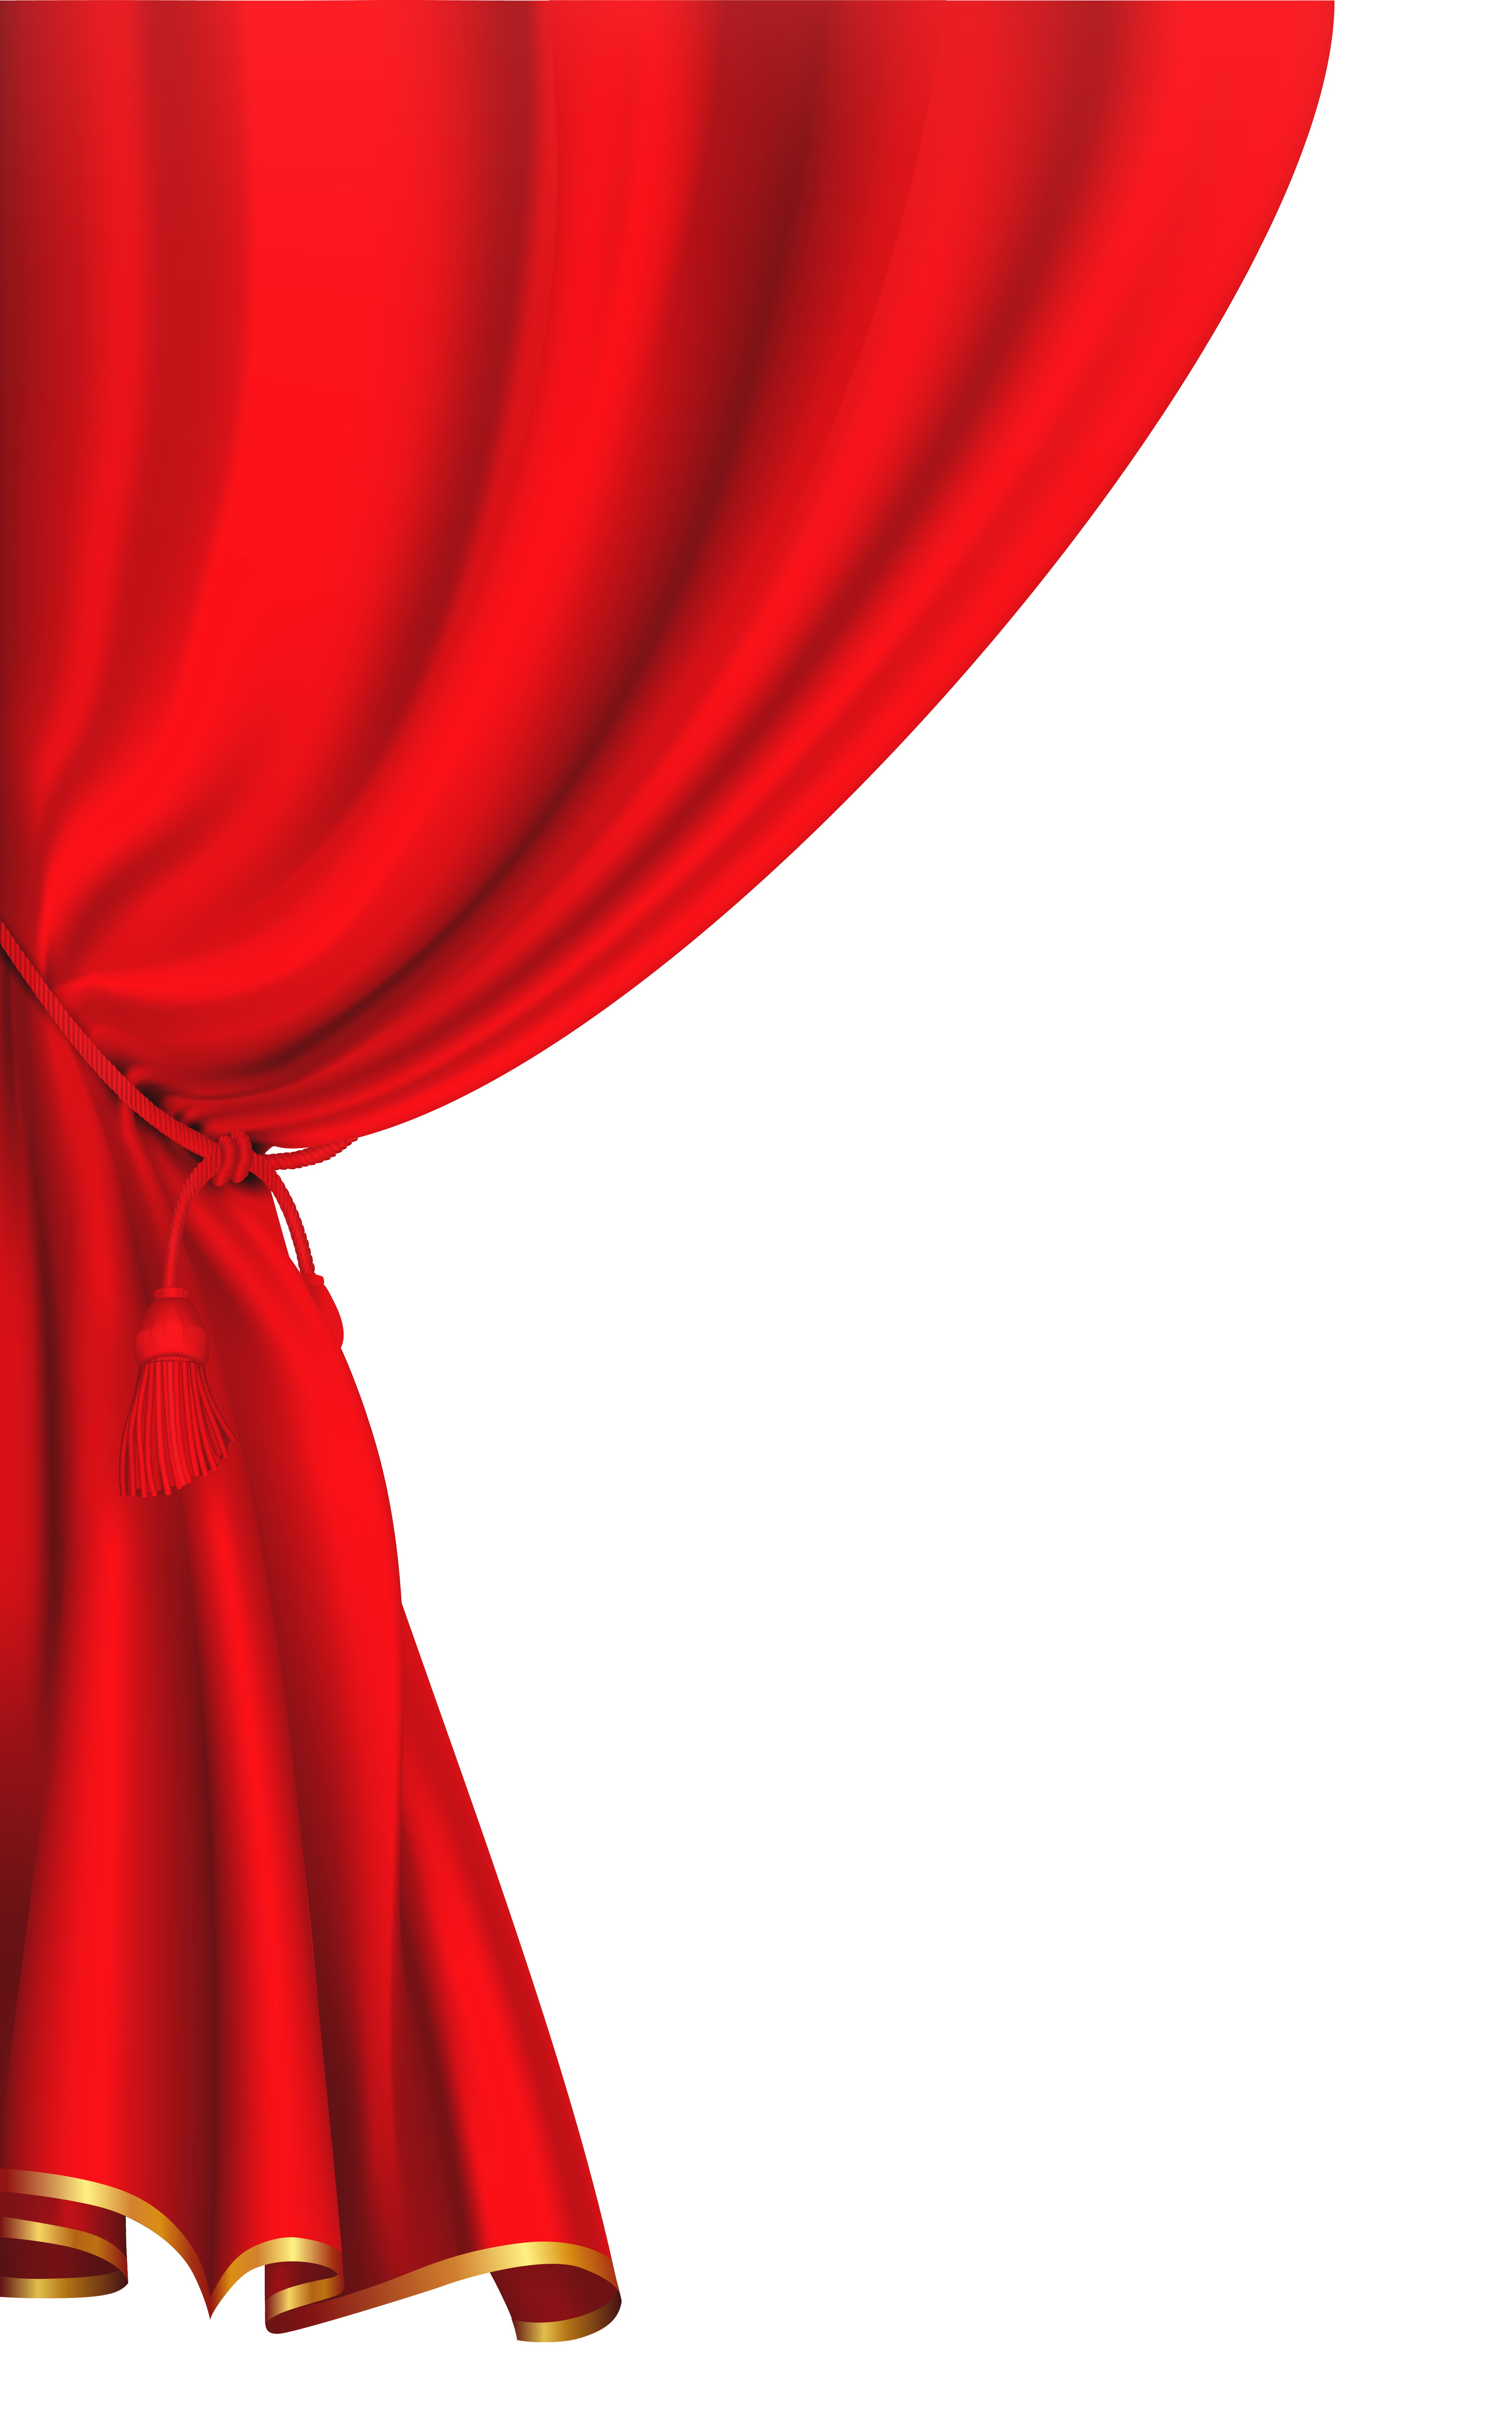 vector royalty free Red curtain image buda. Curtains clipart.